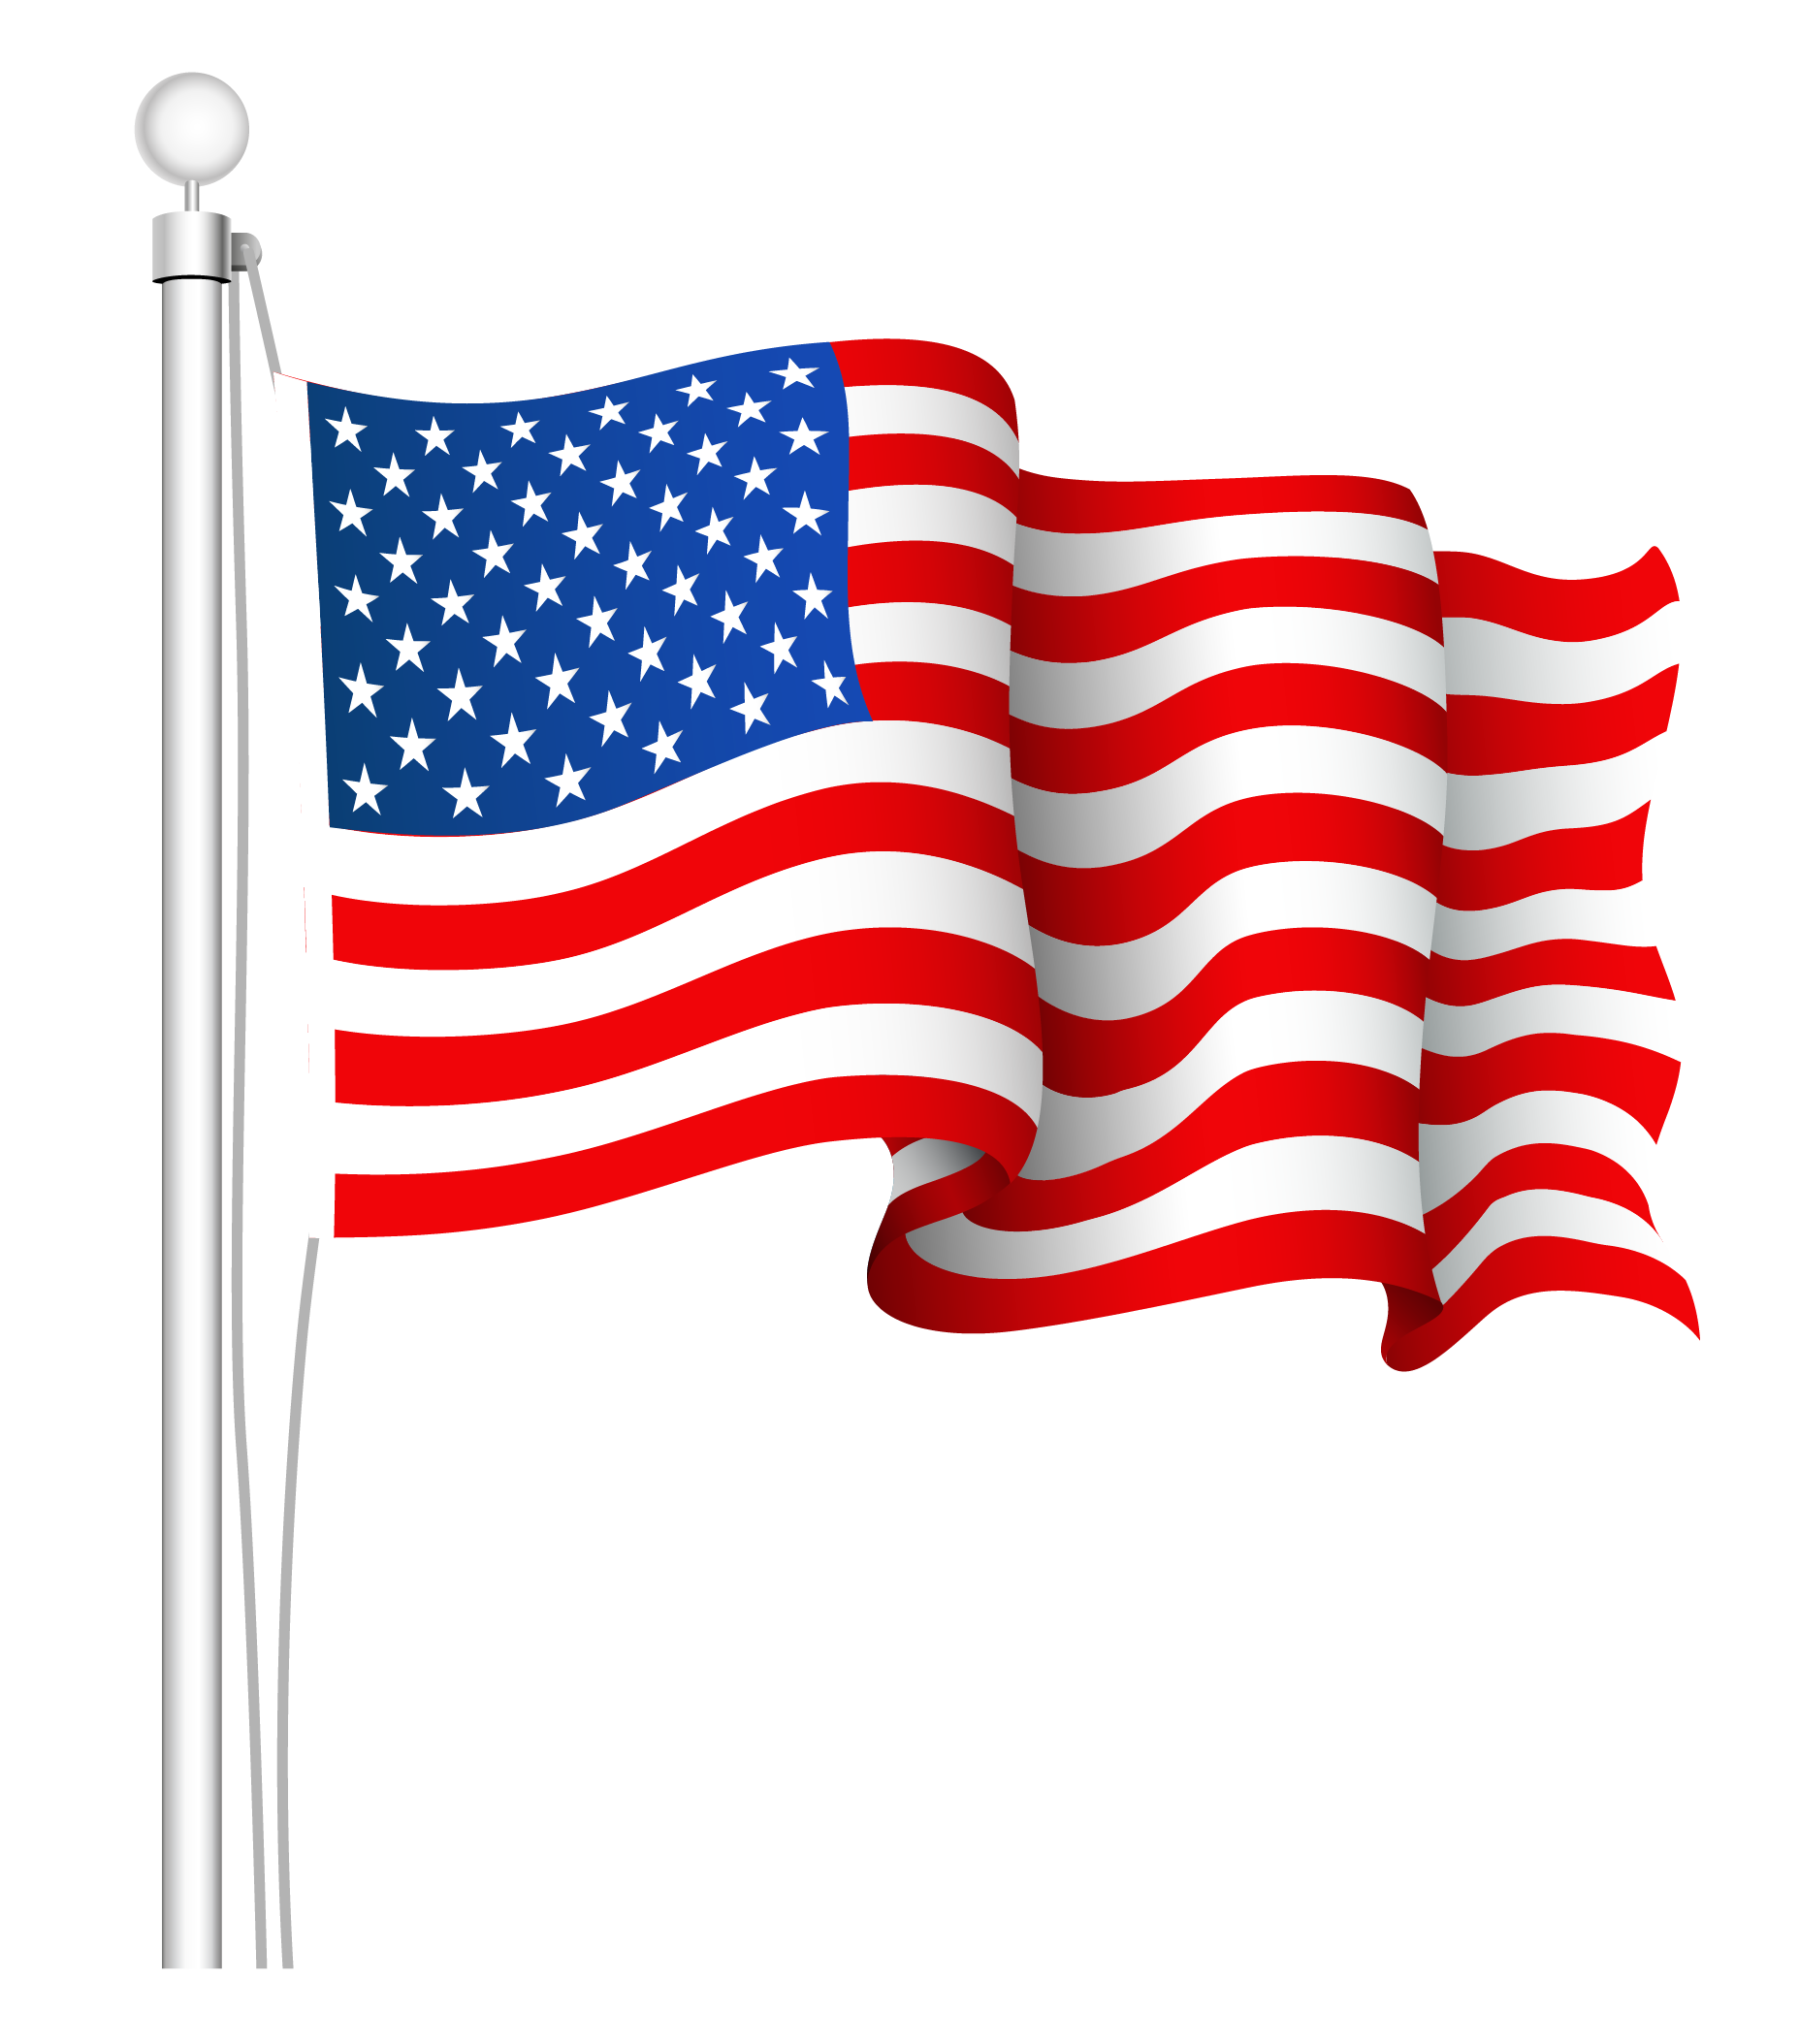 Americn flag on long pole clipart with transparent background png library download Flag of the United States Clip art - USA flag PNG png download ... png library download